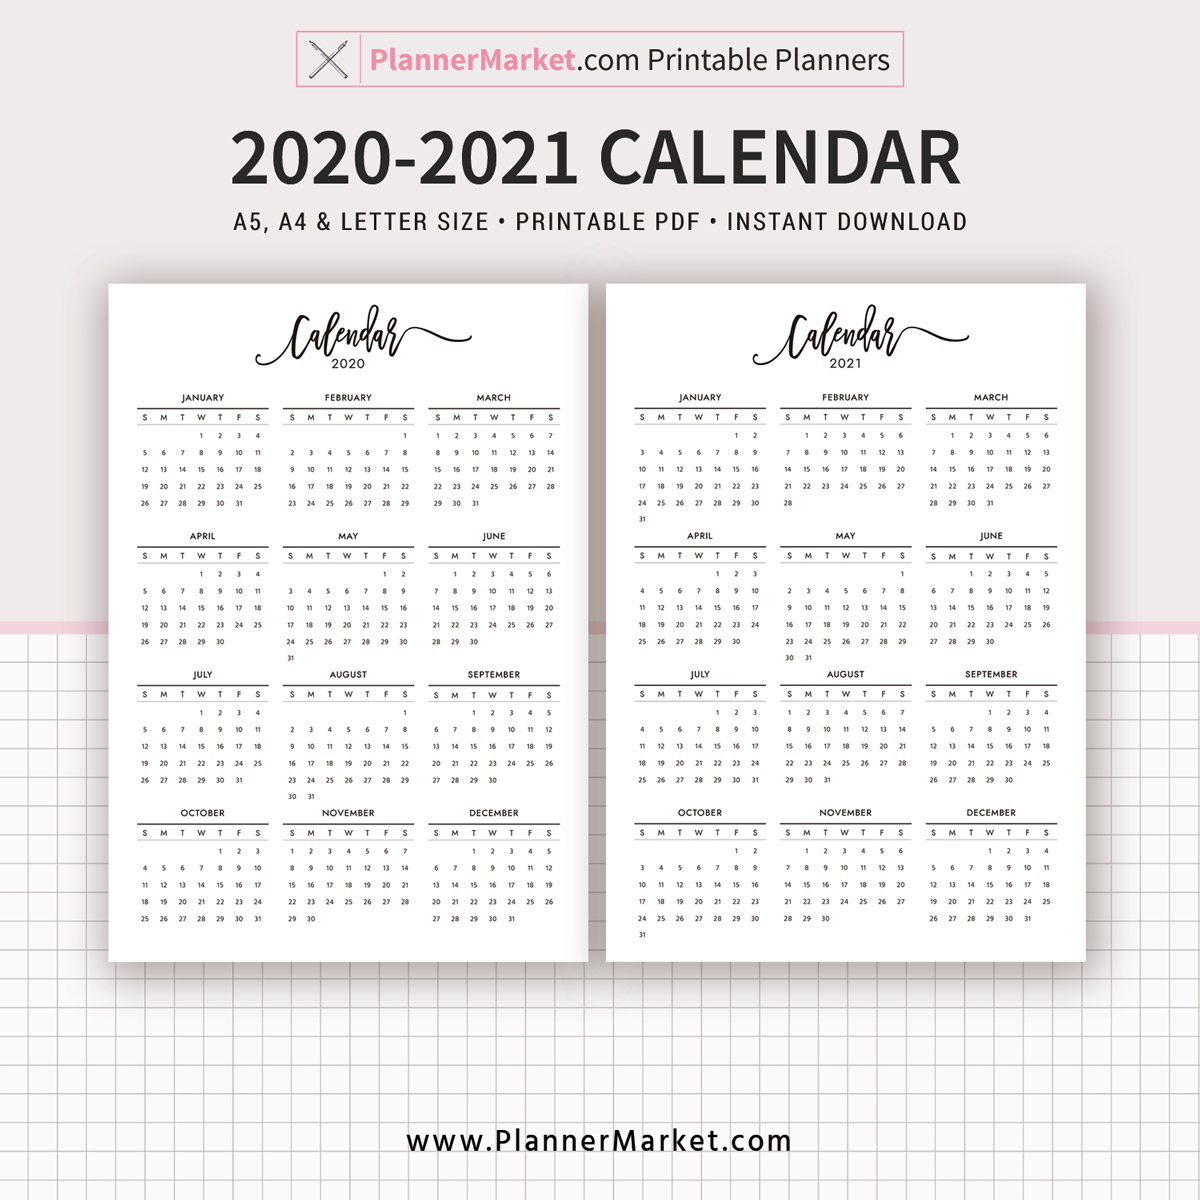 20202021 Calendar Printable, Year At A Glance, Filofax A5, A4, Letter  Size, Planner Template, Planner Inserts, Planner Refills, Instant Download with regard to Year At A Glance Calendar Printable